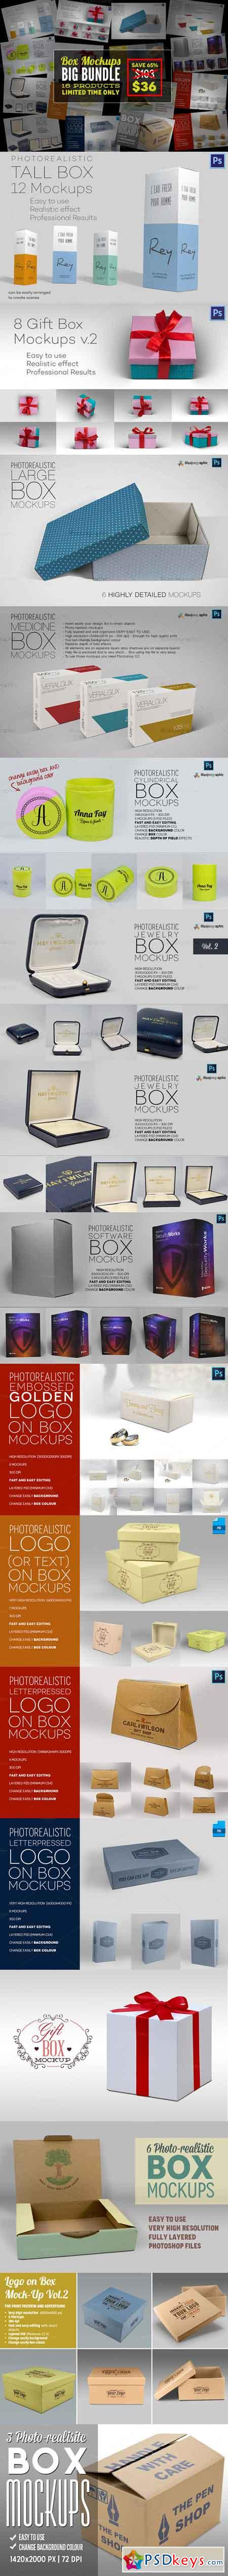 Box Mockups Big Bundle 651383 » Free Download Photoshop